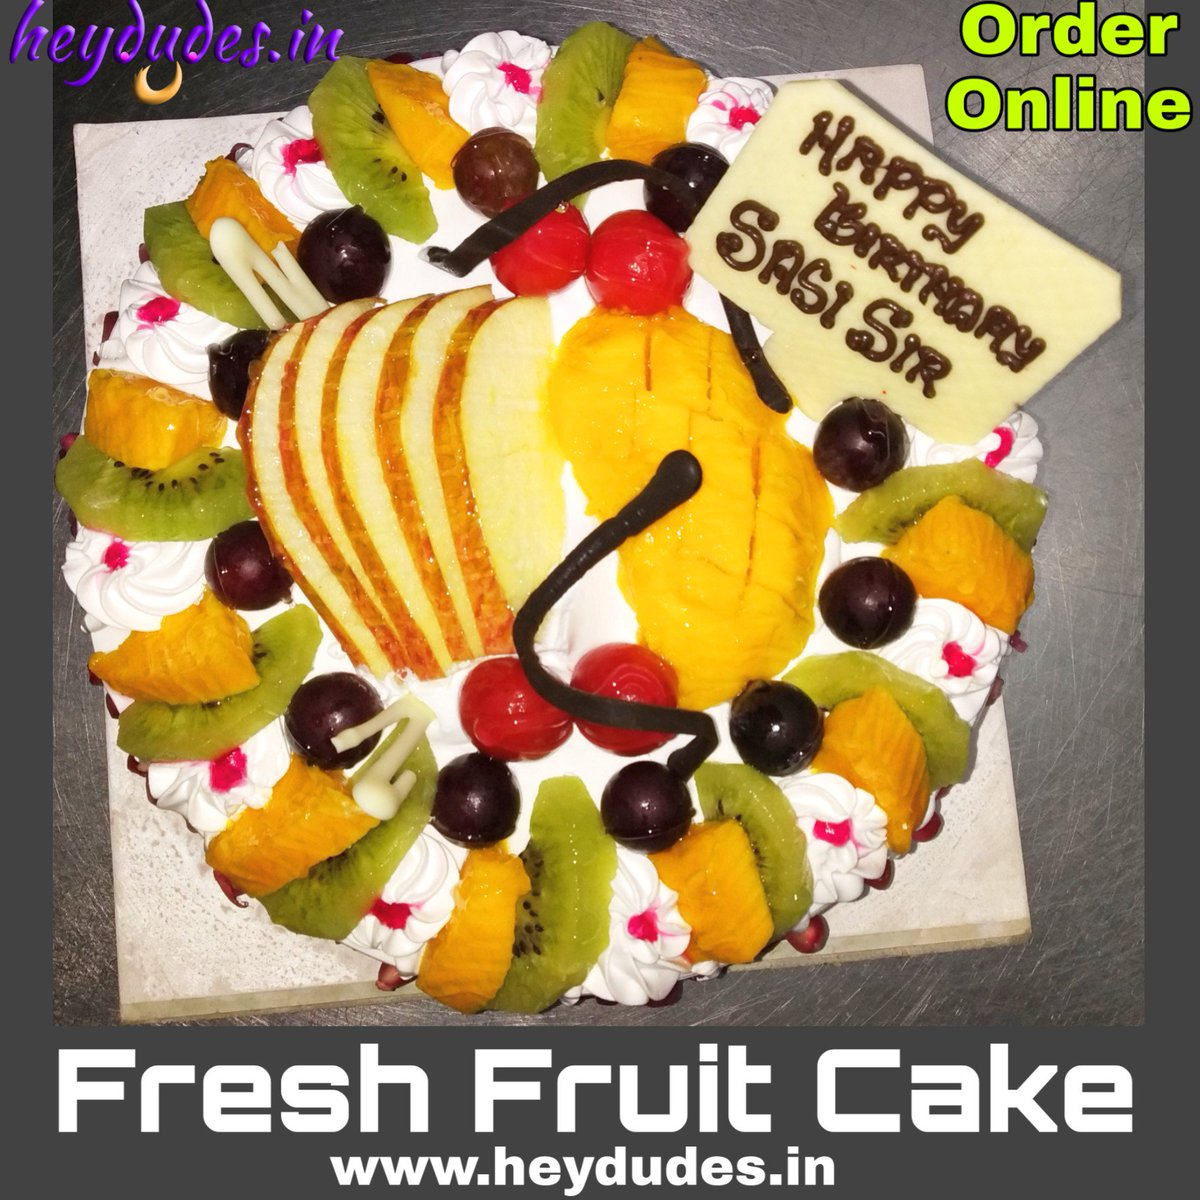 Order Your Cake Online And Get Delivered At Doorstep Heydudesin Cakeshop Cakedelivery Cakes Birthdaycake Chennai 24hourscake